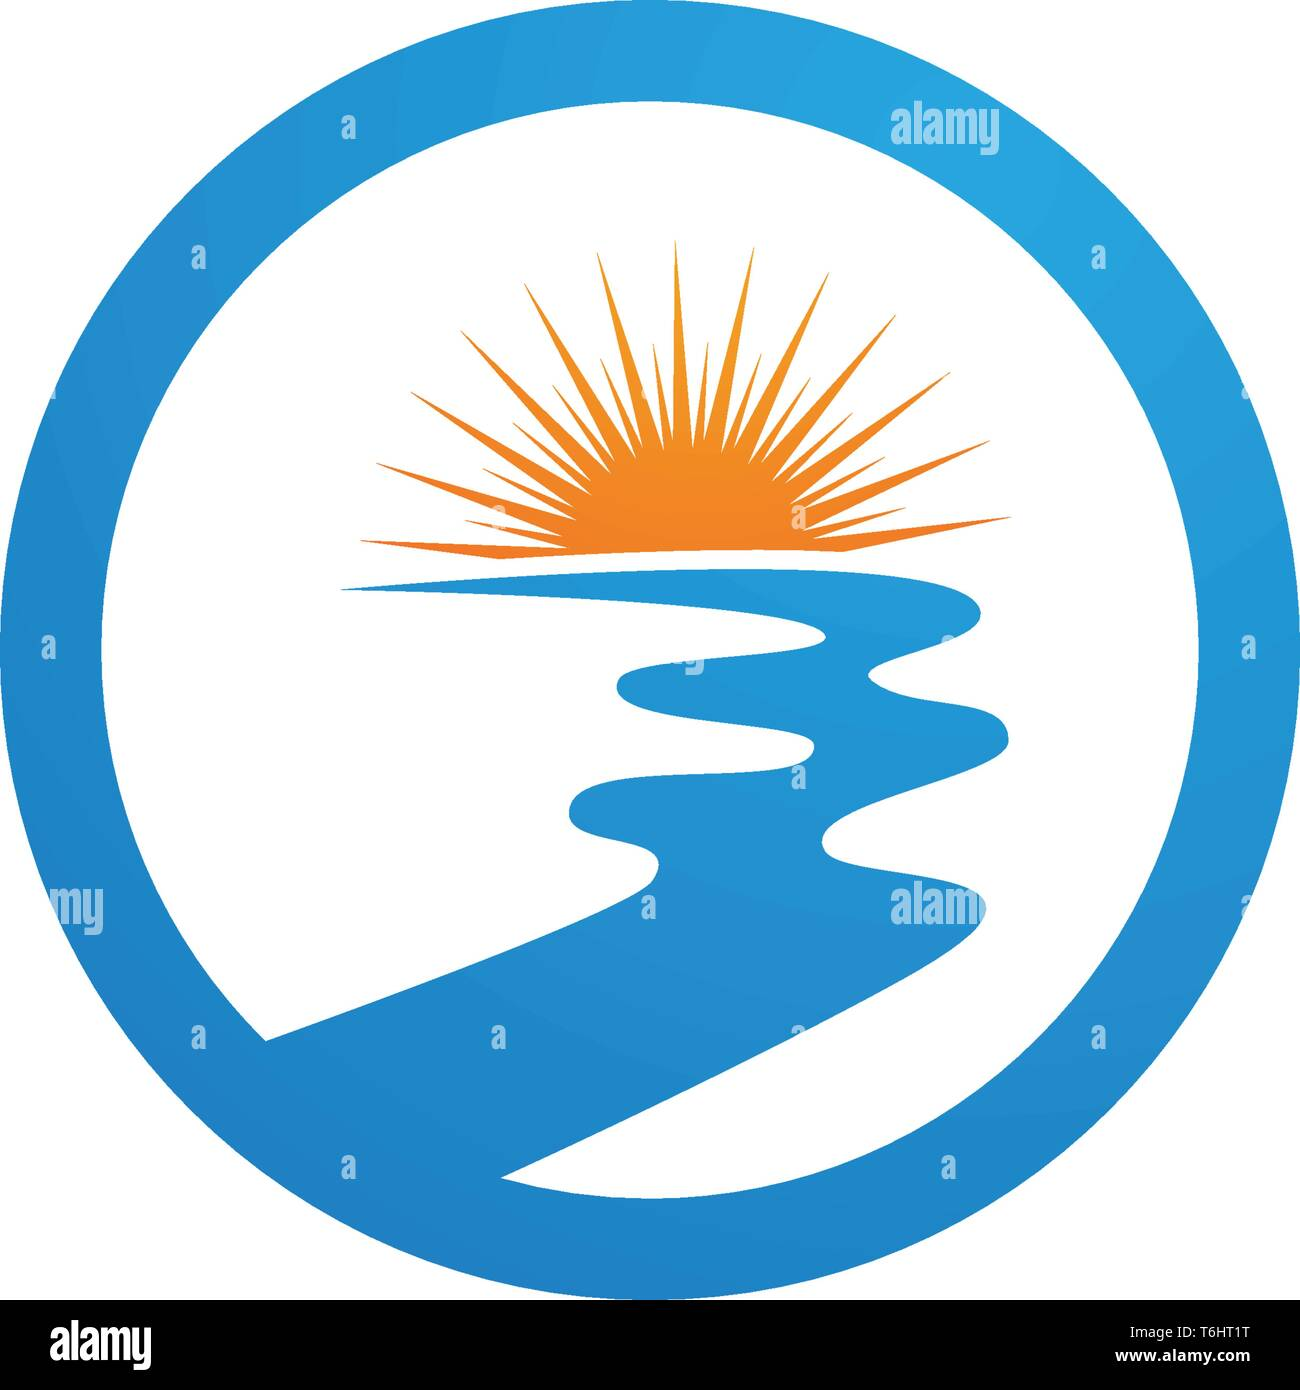 river logo vector high resolution stock photography and images alamy https www alamy com river logo template vector icon illustration image245025140 html